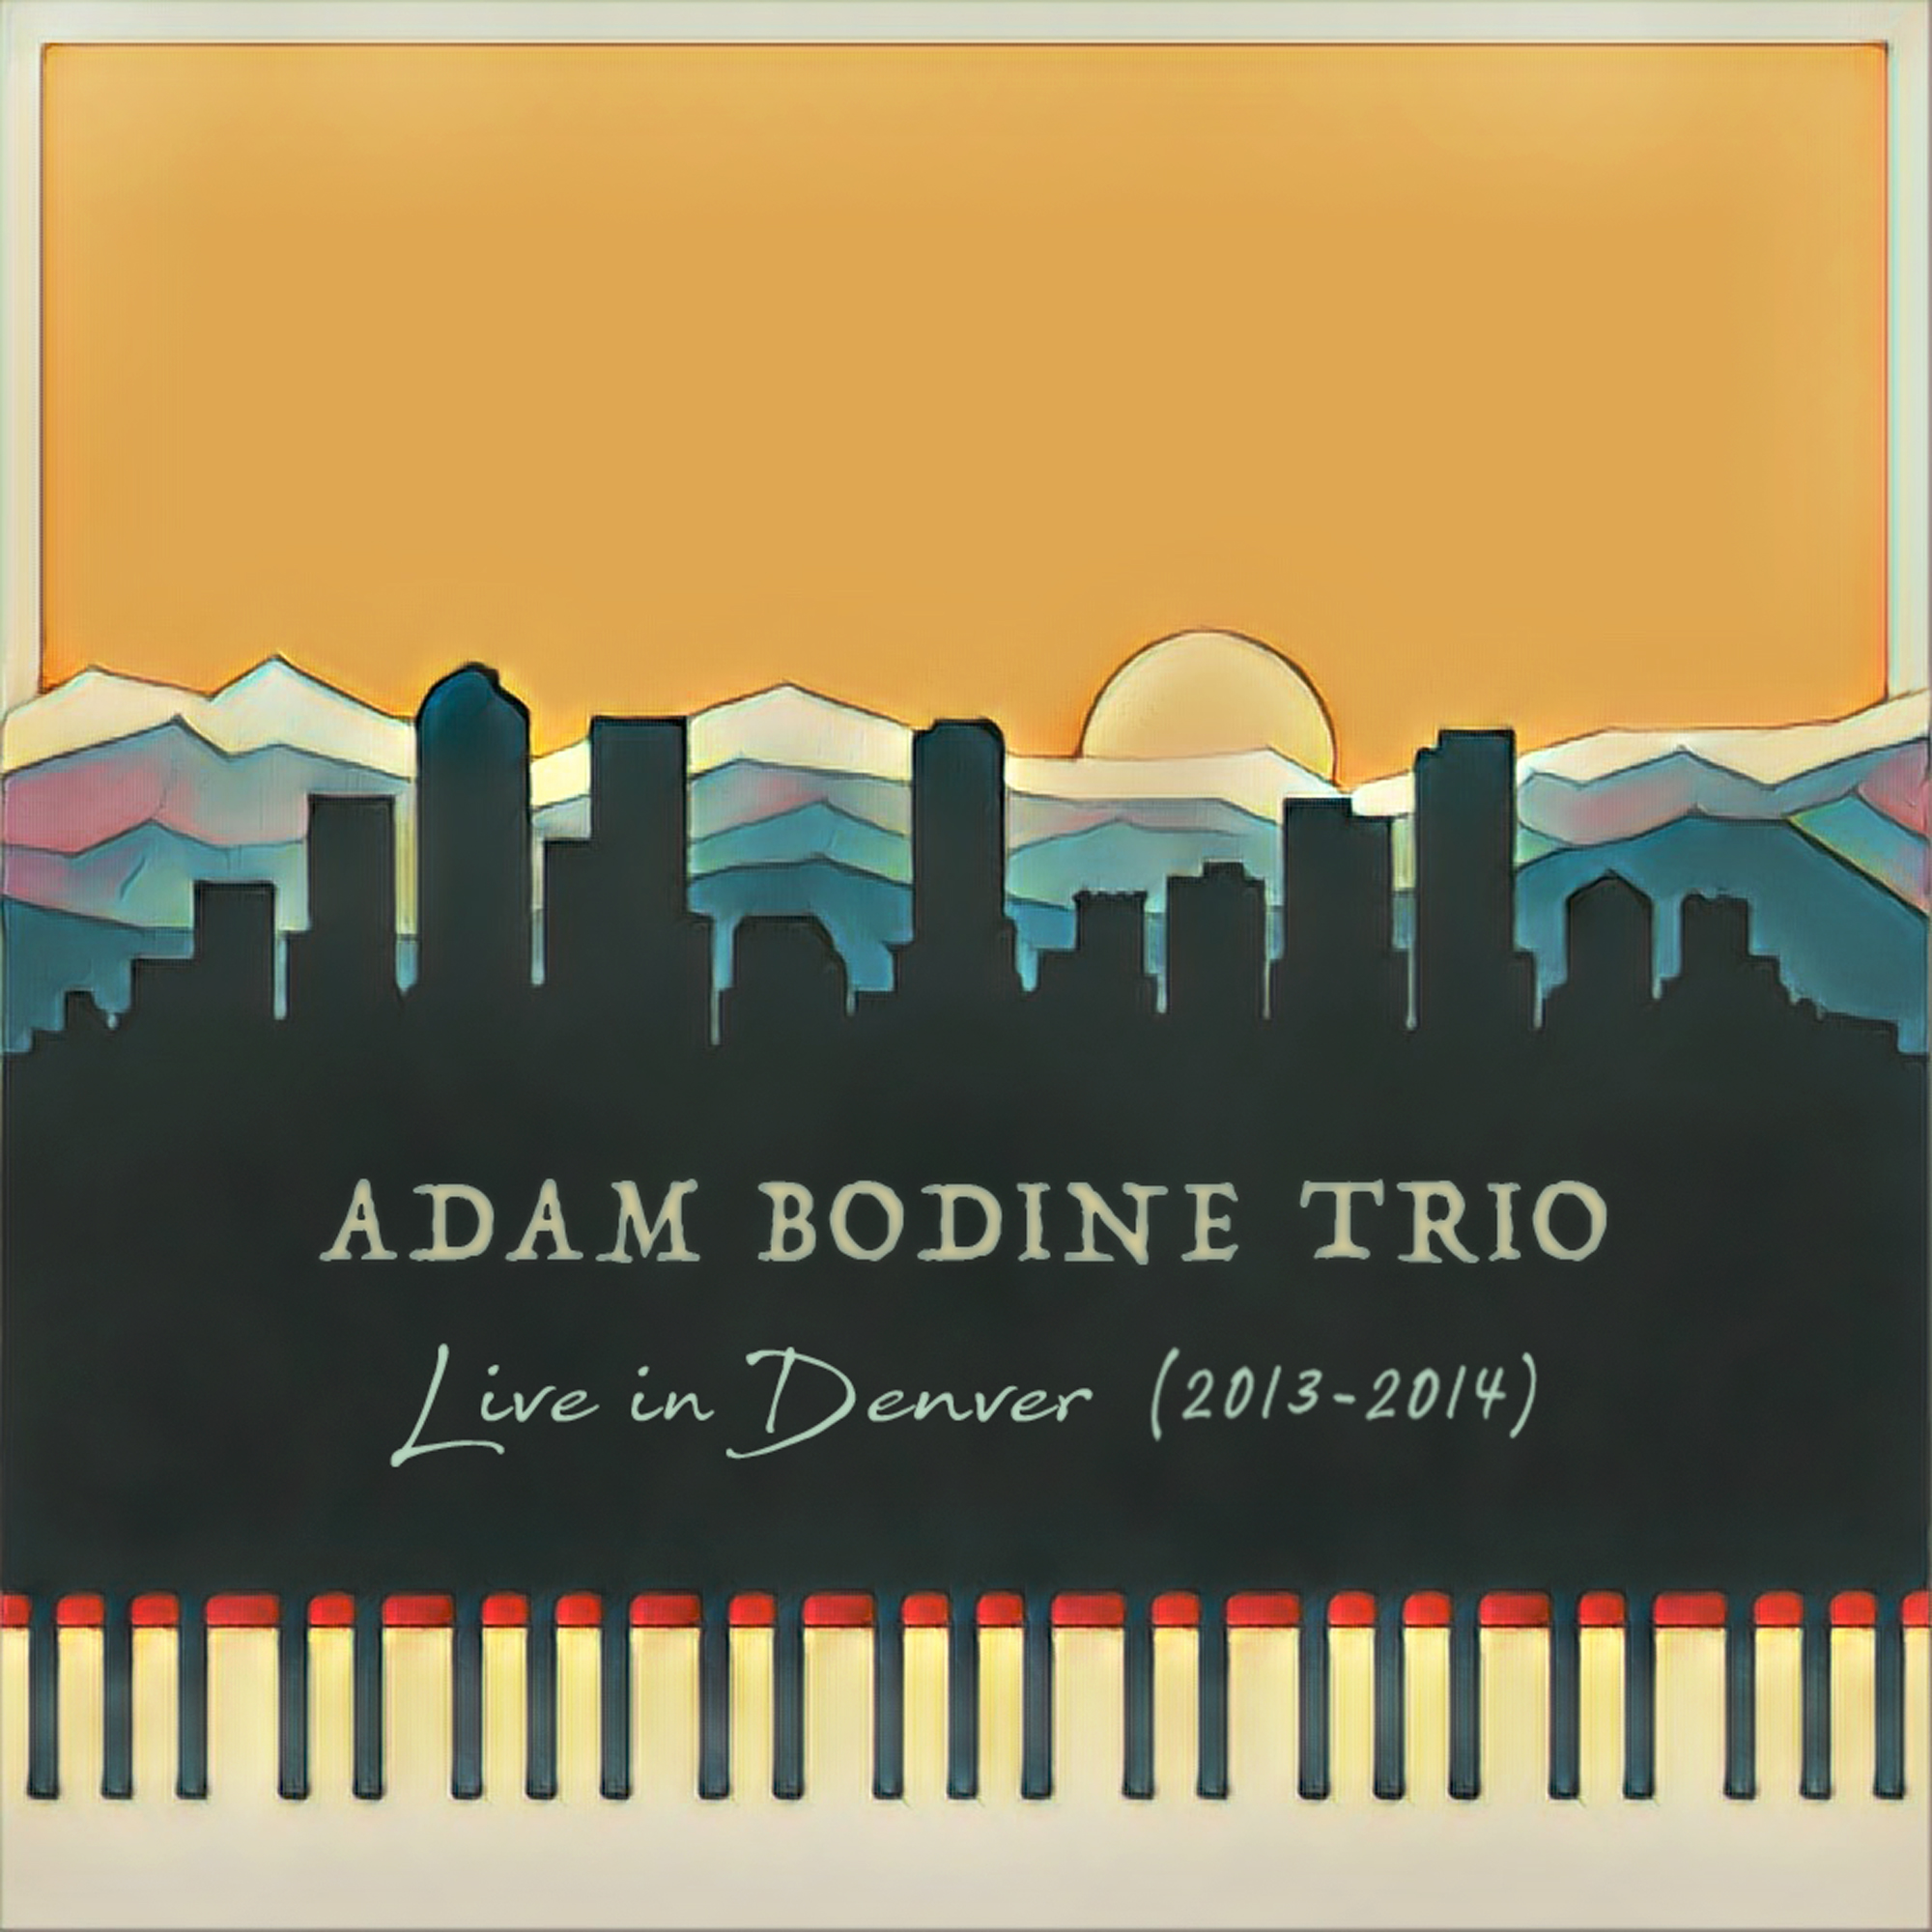 Adam Bodine Trio - Live in Denver (2013-2014)